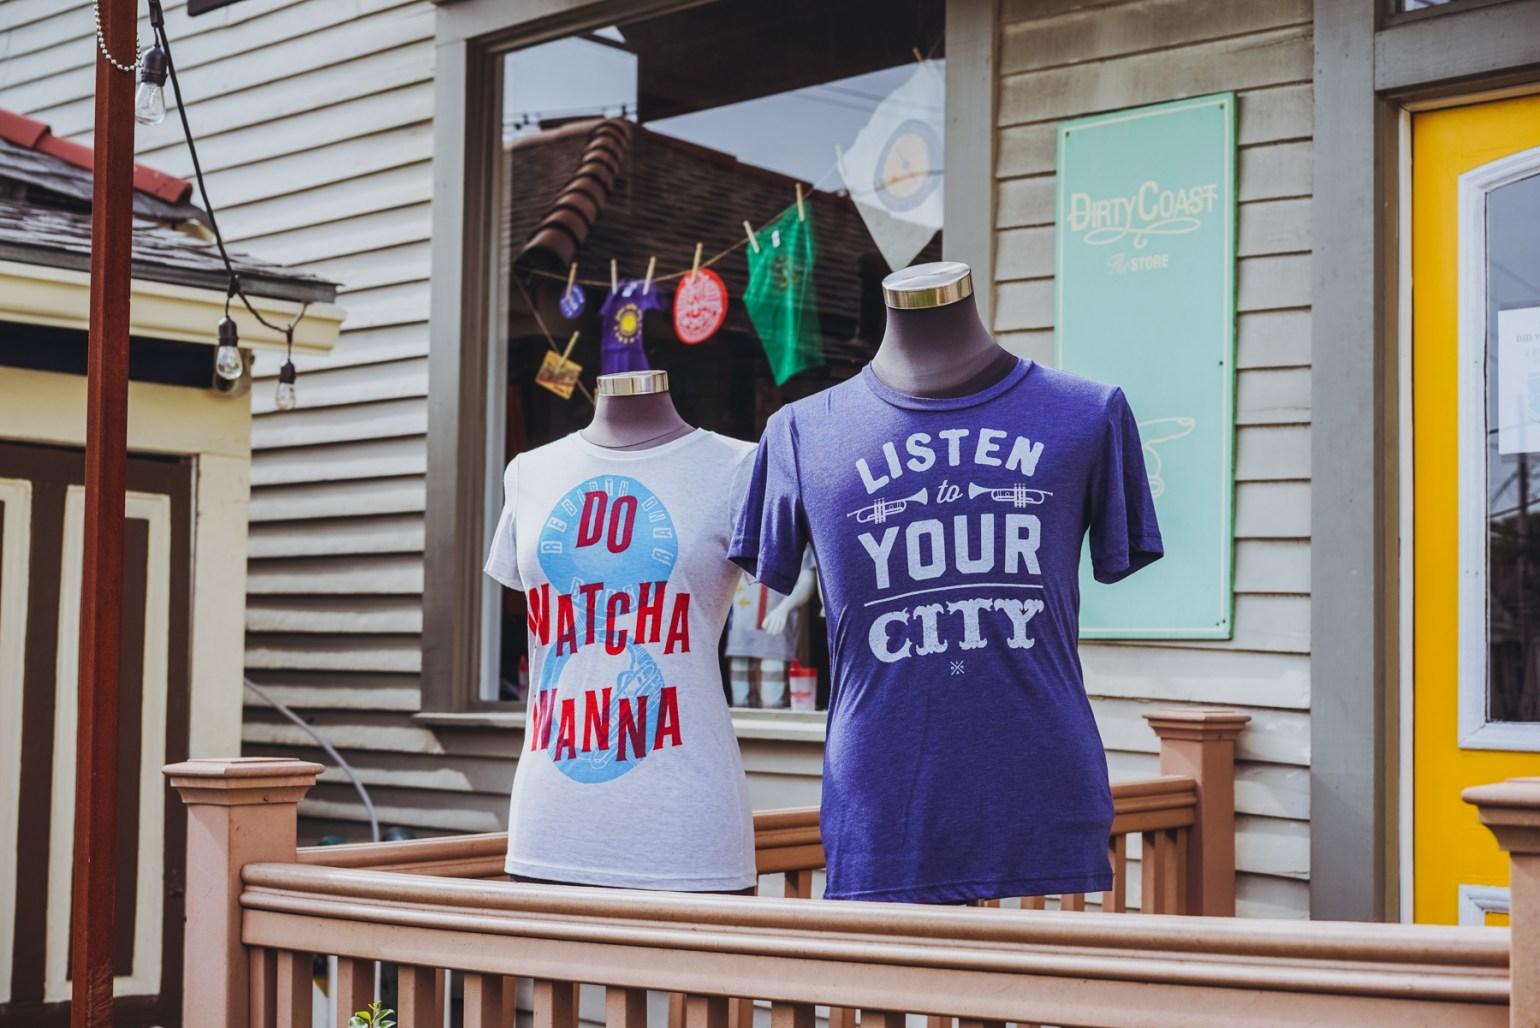 You're probably gonna need a t-shirt or two to bring back home or show off your incredible New Orleans experience. Dirty Coast Press (5631 Magazine St.) sells some pretty unique, often humorous designs that will definitely spark conversations wherever you wear them.